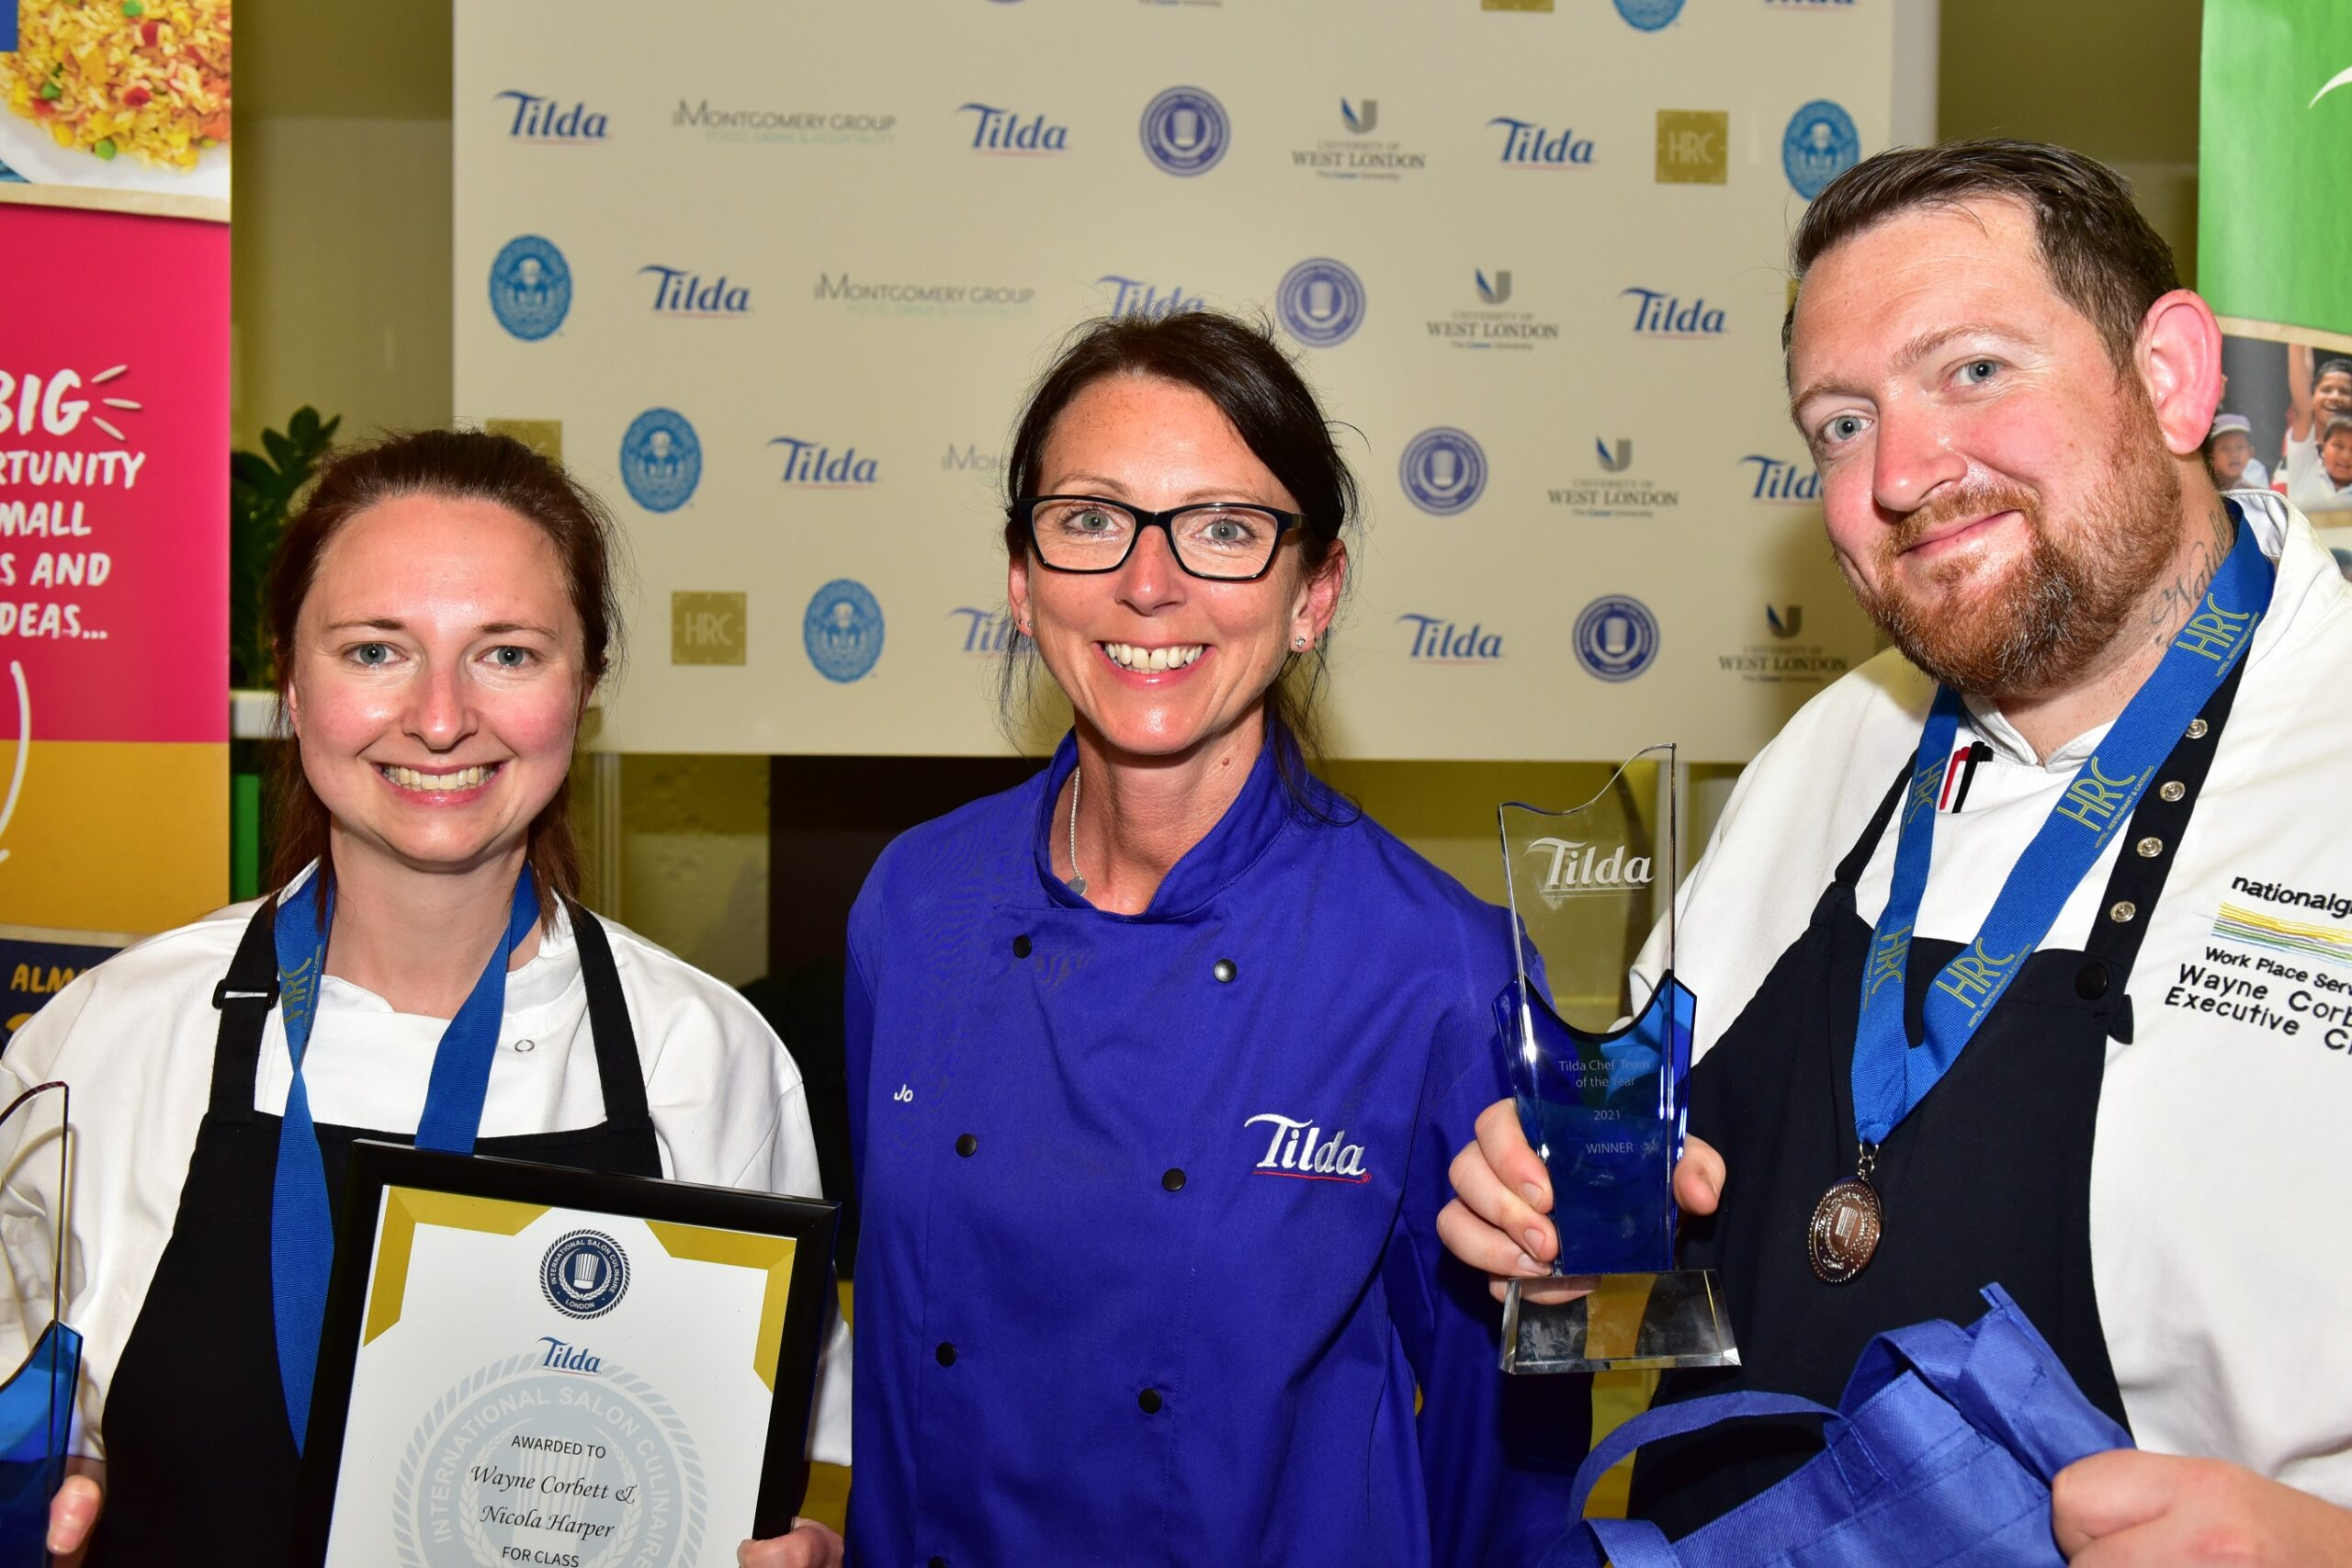 Compass Group UK & Ireland Chefs Take Home Tilda Chef Team of the Year Award